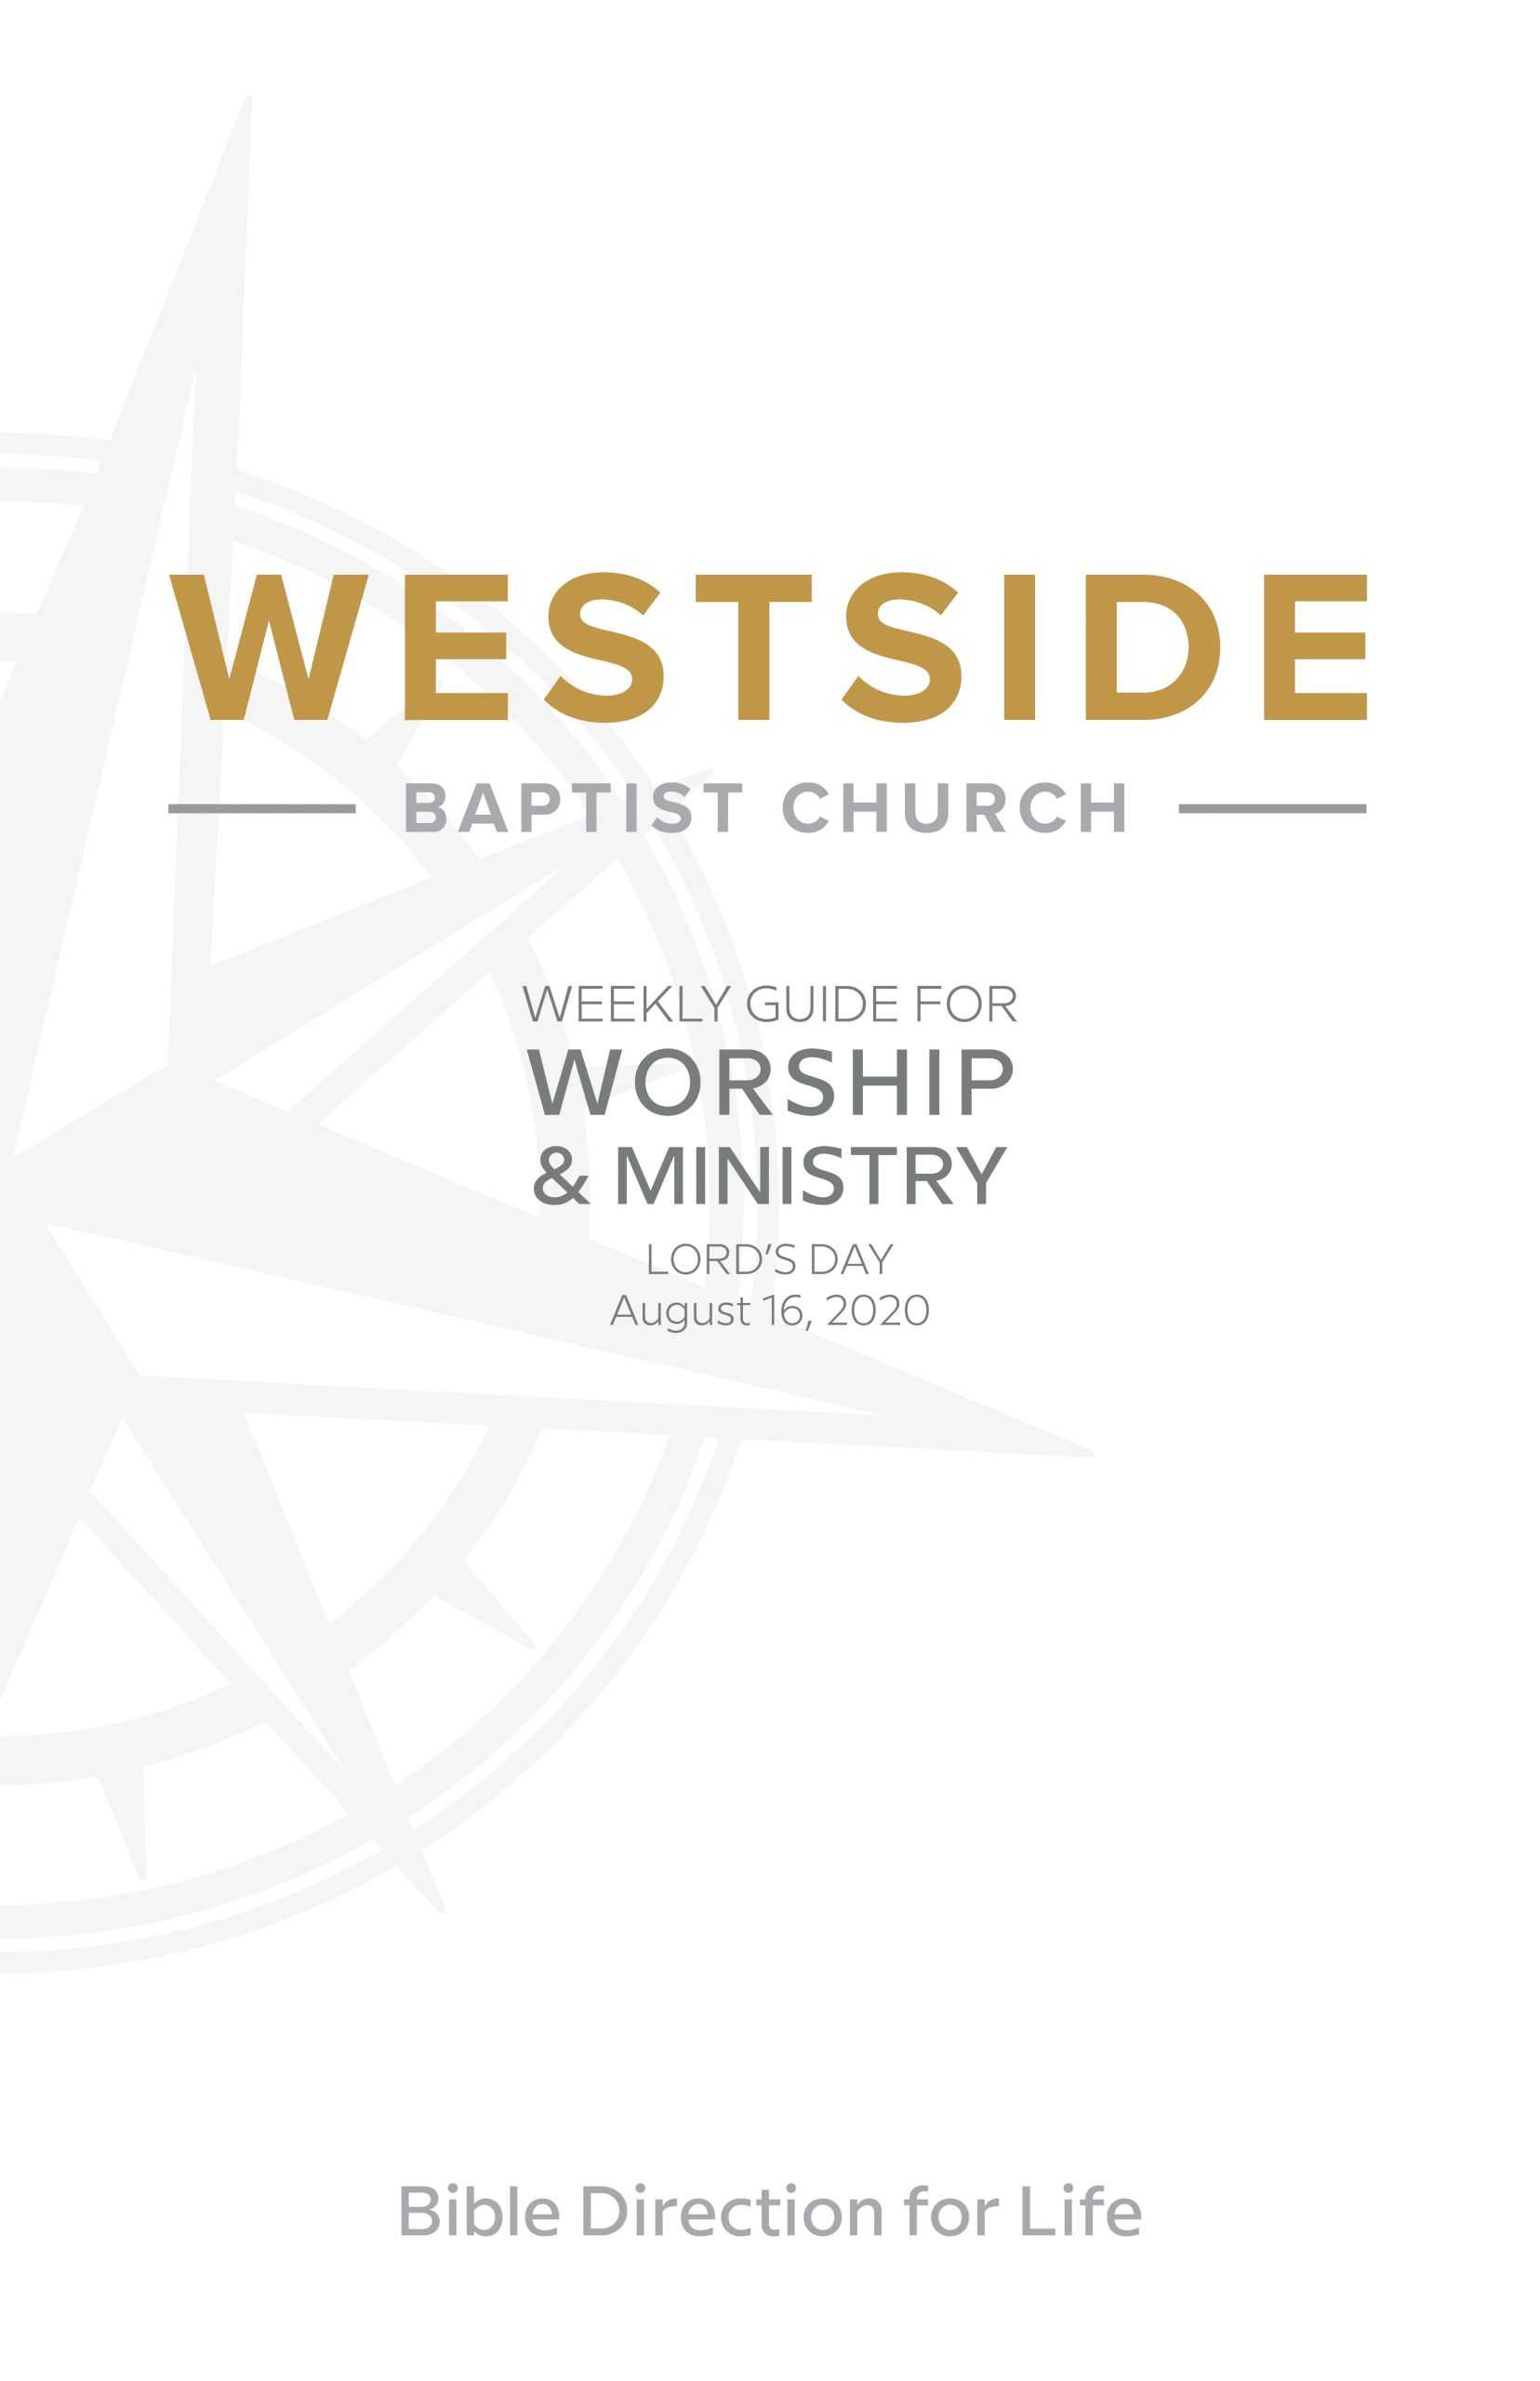 Weekly Guide for Worship and Ministry — August 16